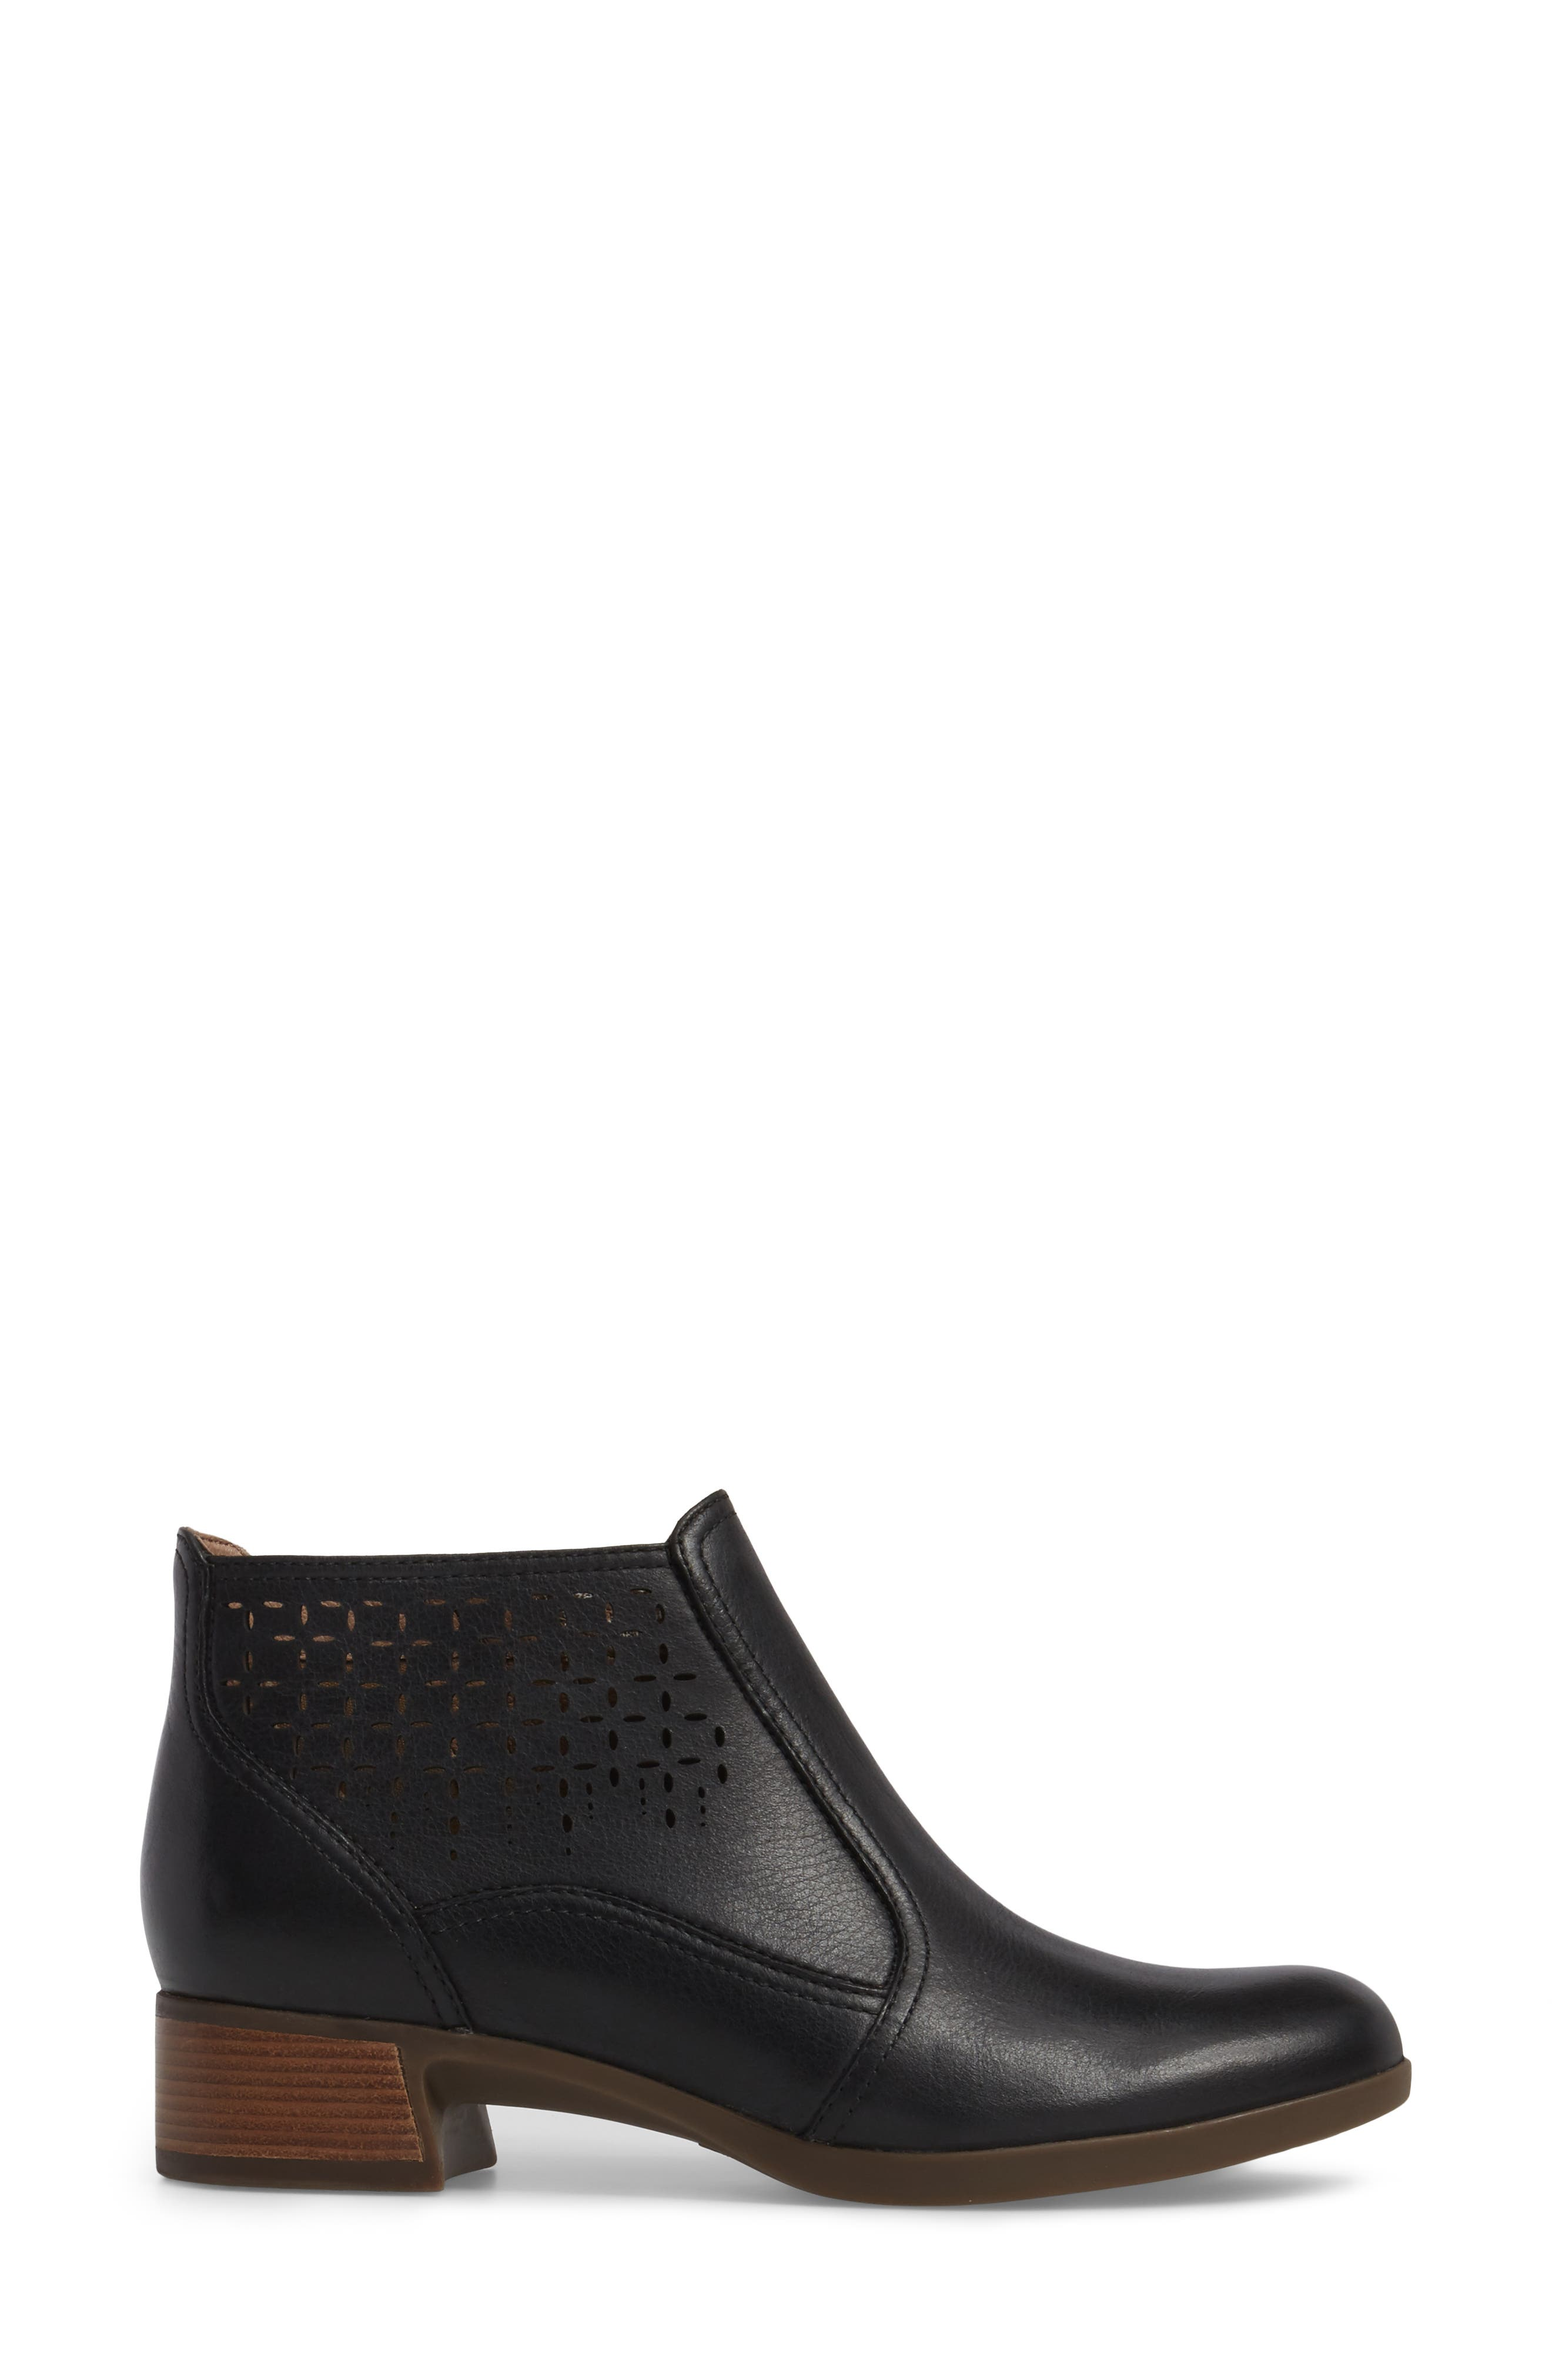 Liberty Laser Cut Bootie,                             Alternate thumbnail 3, color,                             Black Burnished Nappa Leather